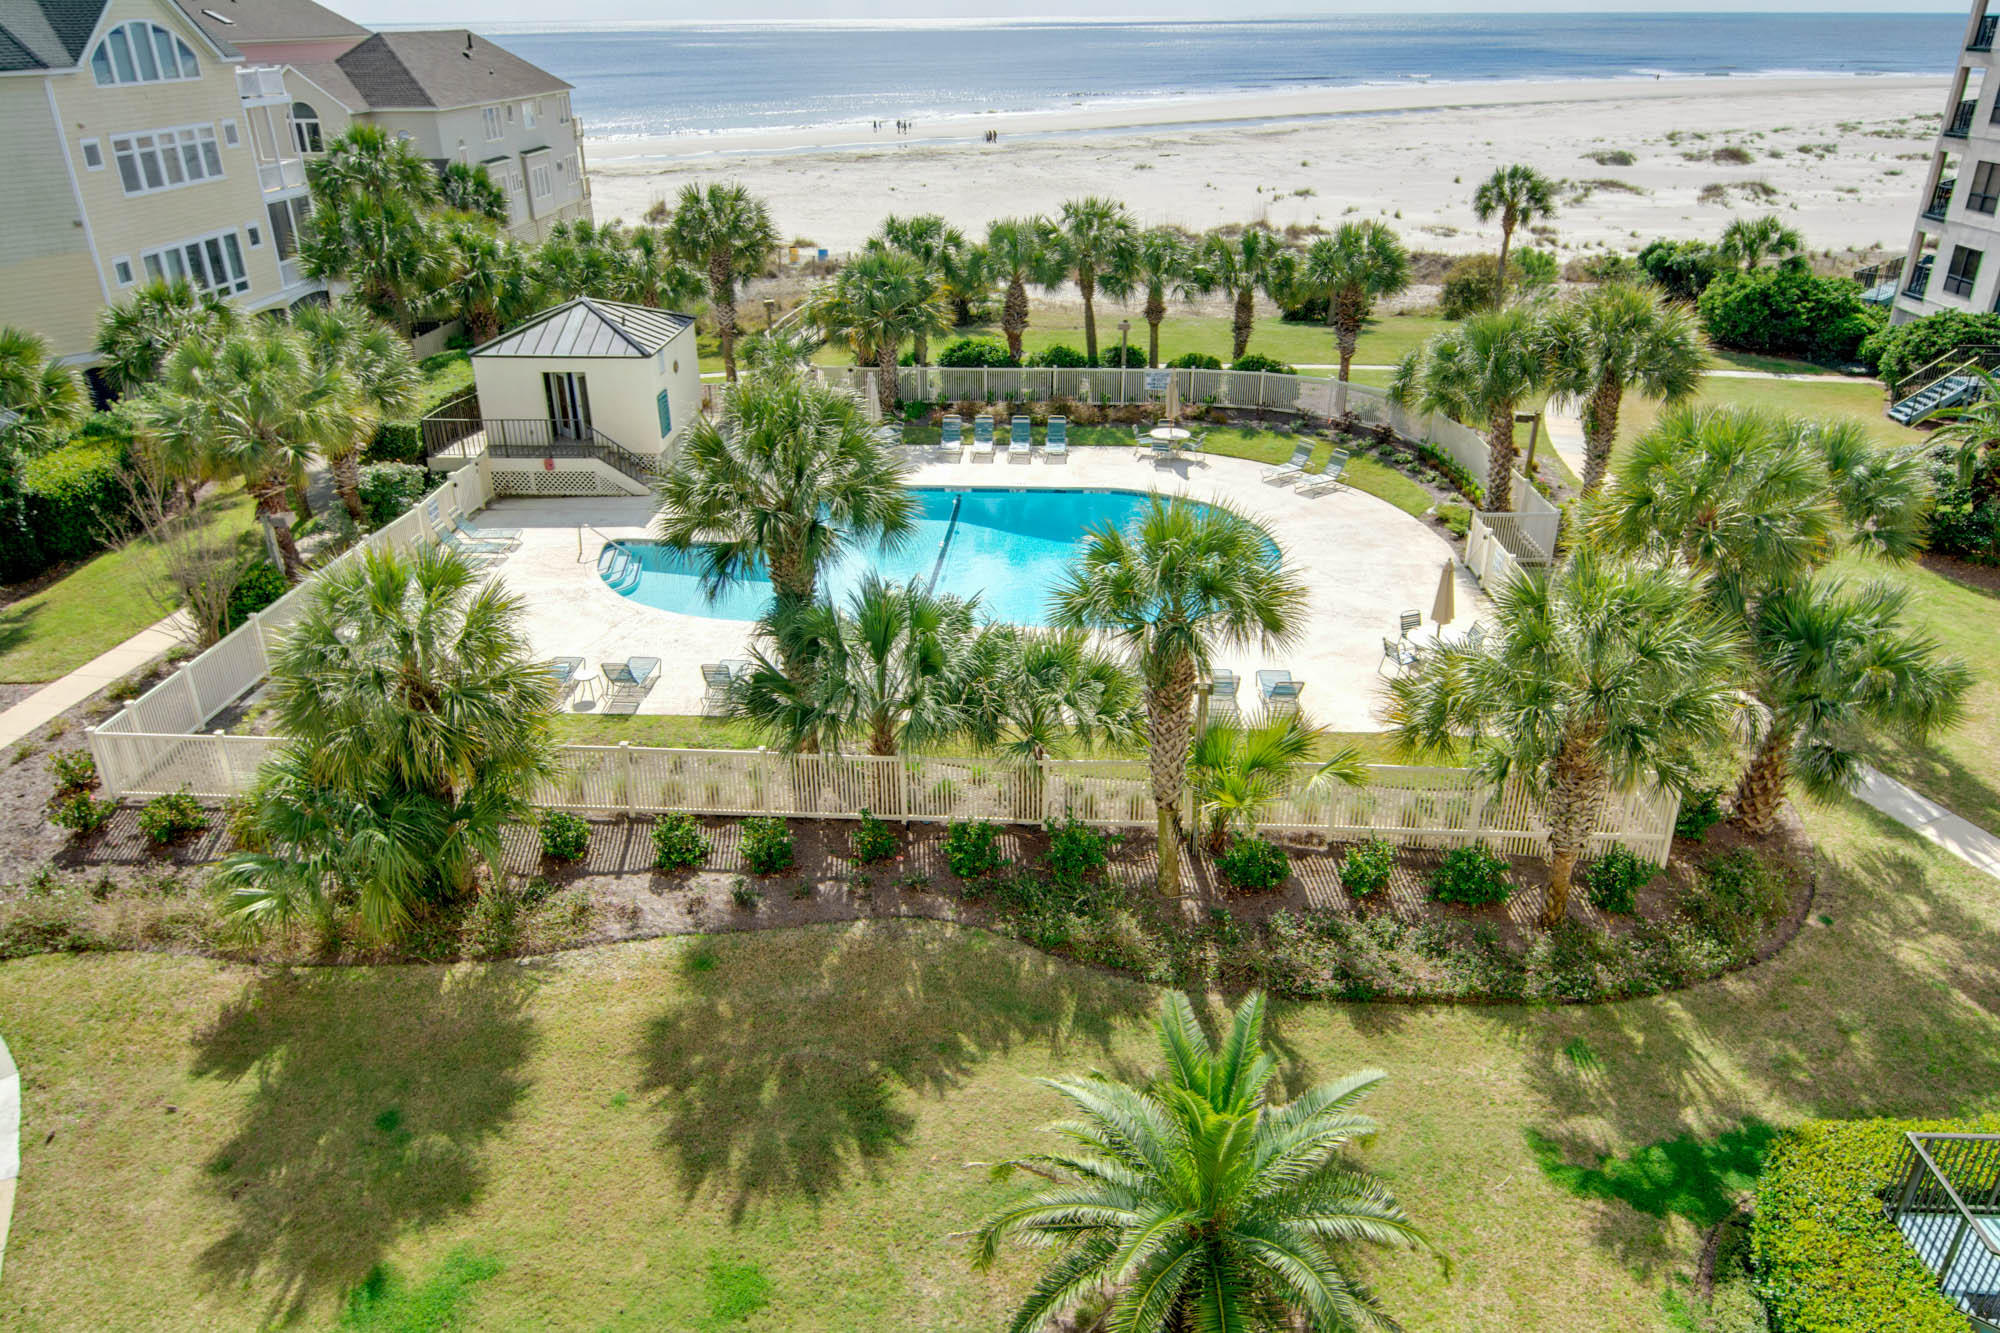 Wild Dunes Homes For Sale - 210 Summerhouse, Isle of Palms, SC - 11